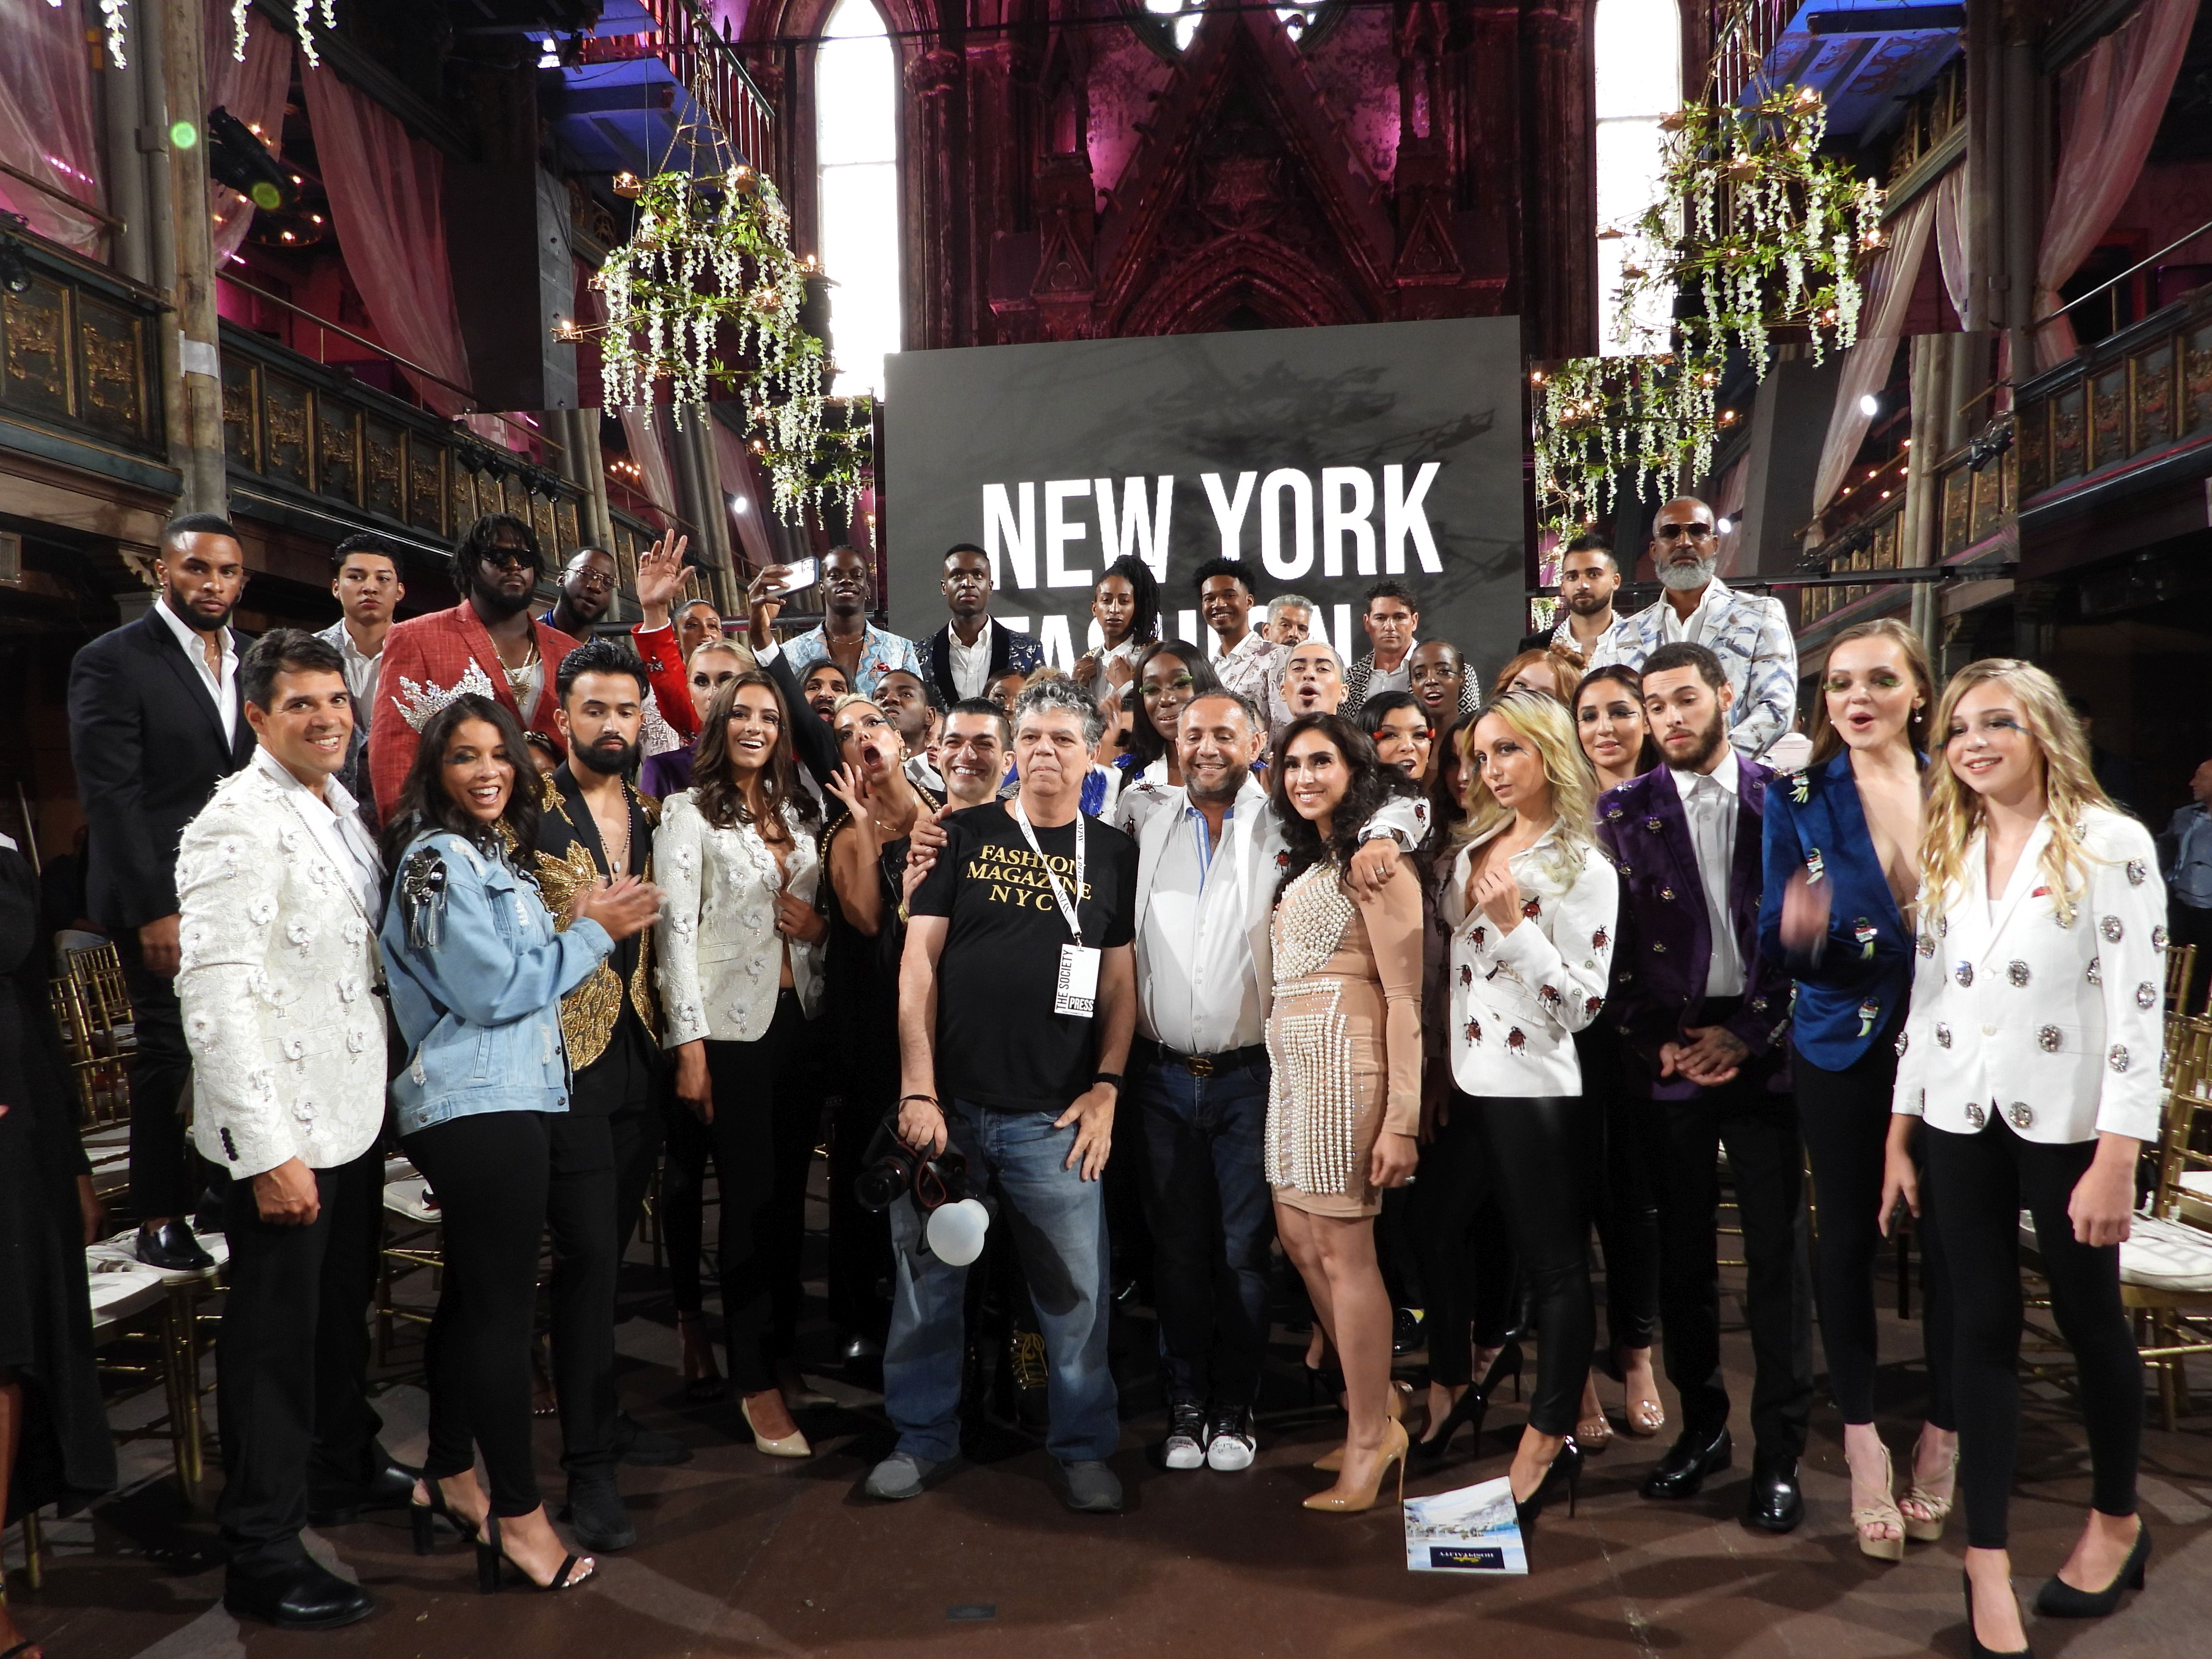 Designer Elie Baleh NYFW Show Finale Group Photo with all 140 models